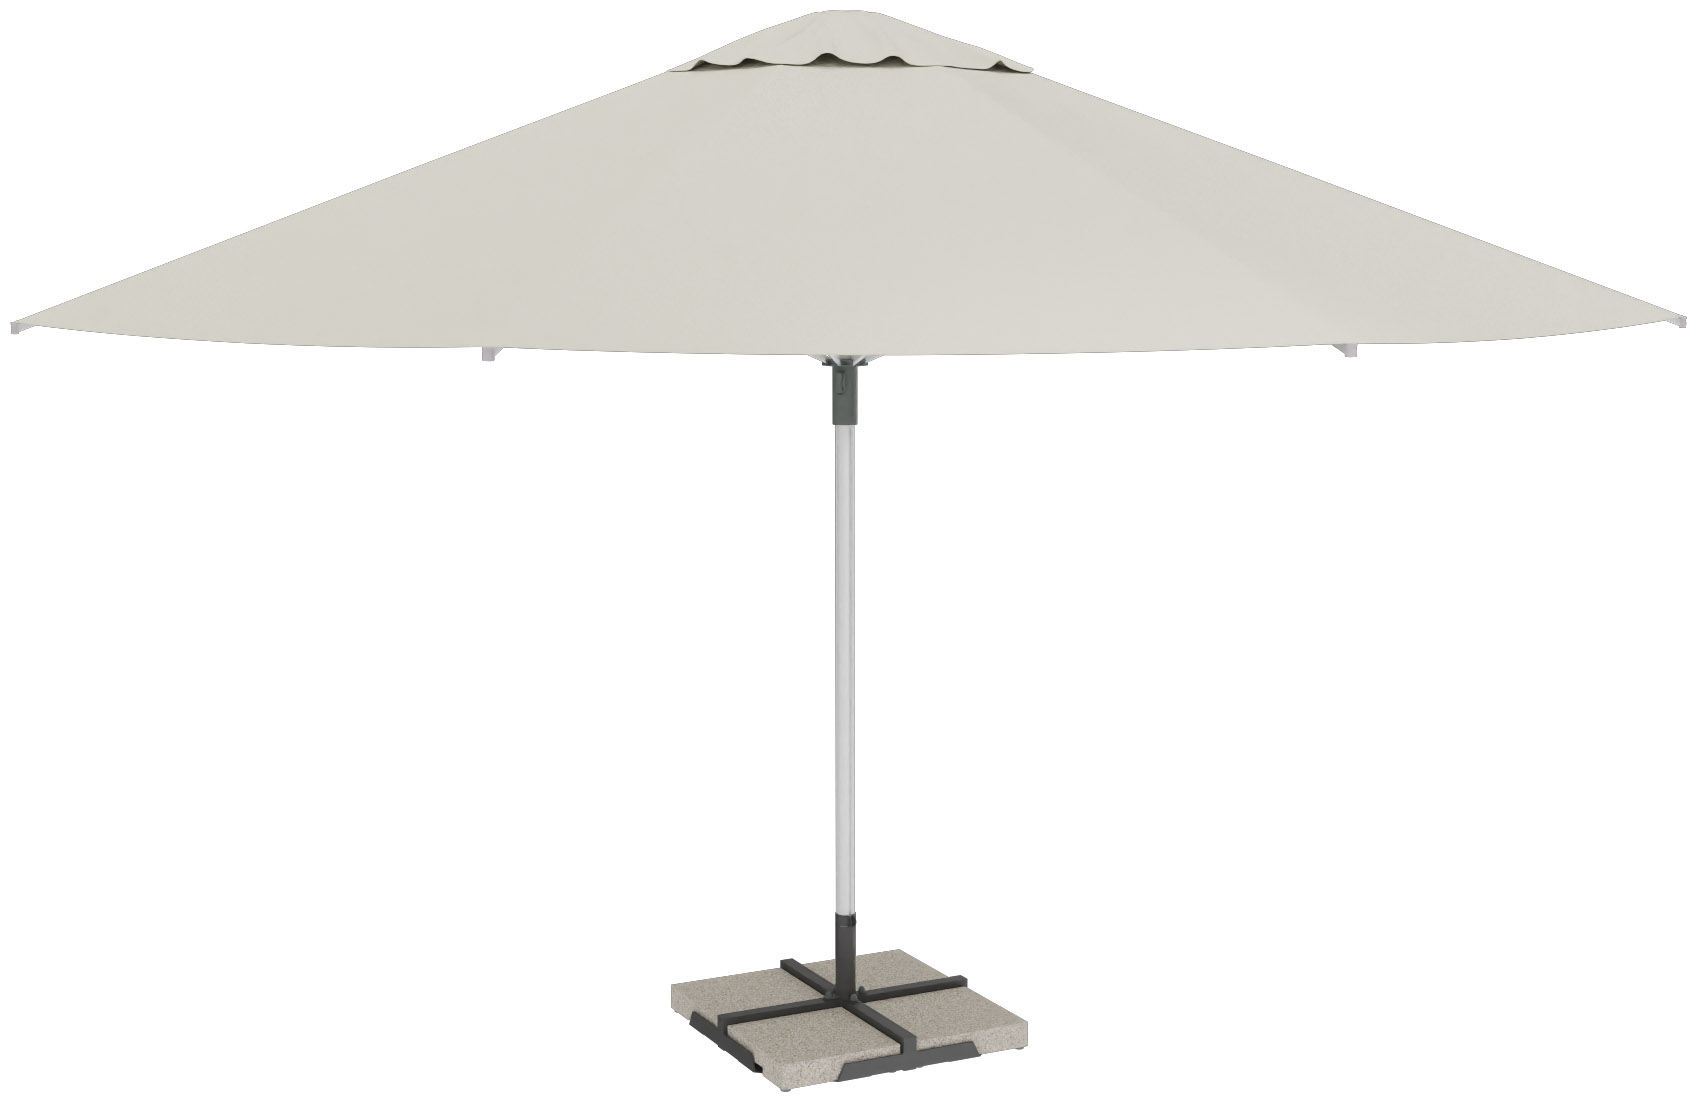 sunshade Nerida